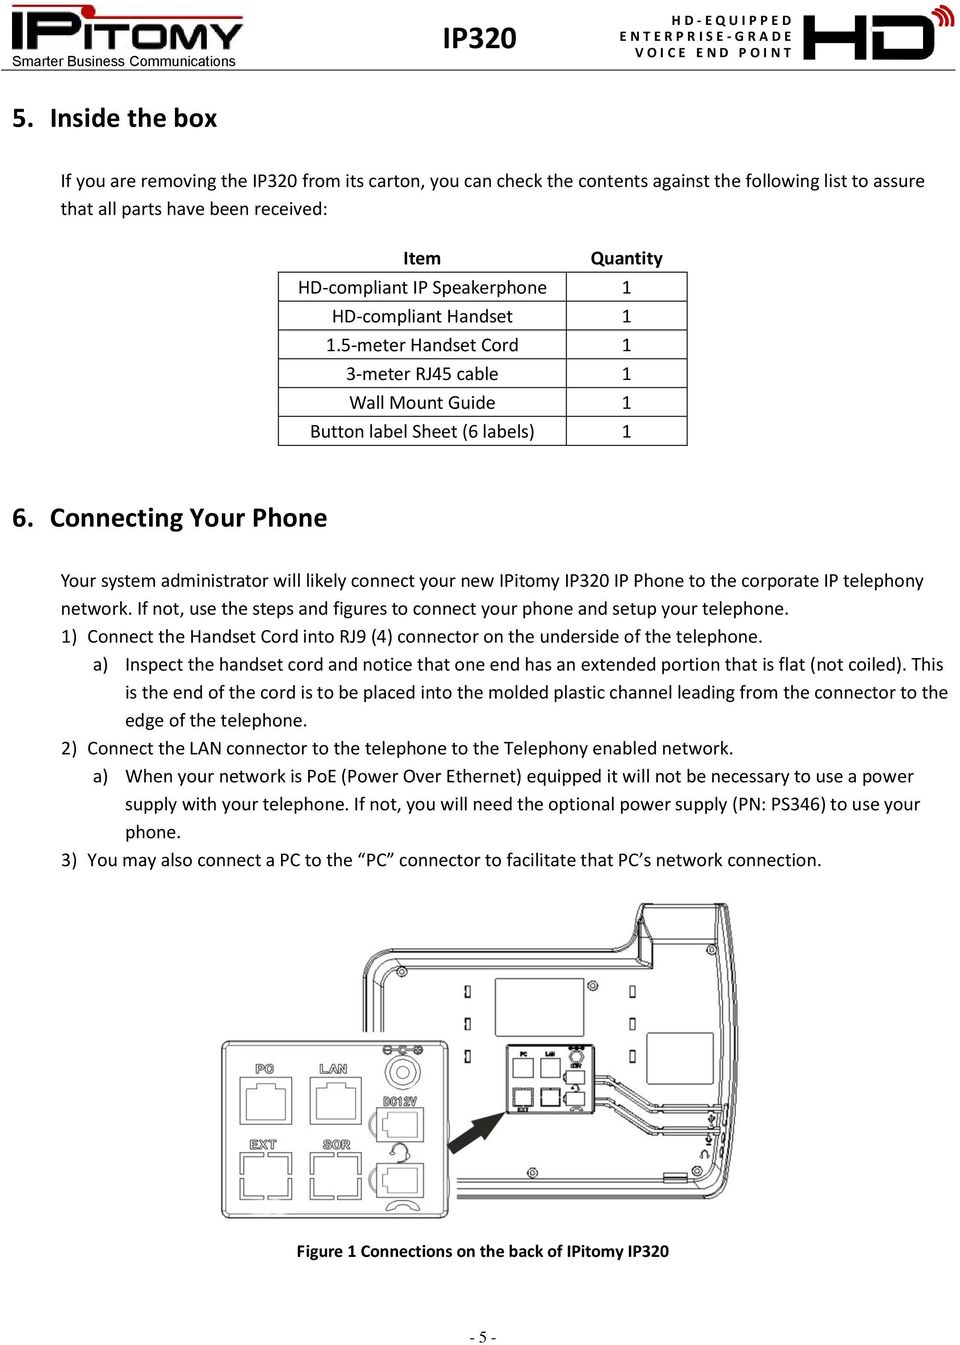 medium resolution of connecting your phone your system administrator will likely connect your new ipitomy ip phone to the